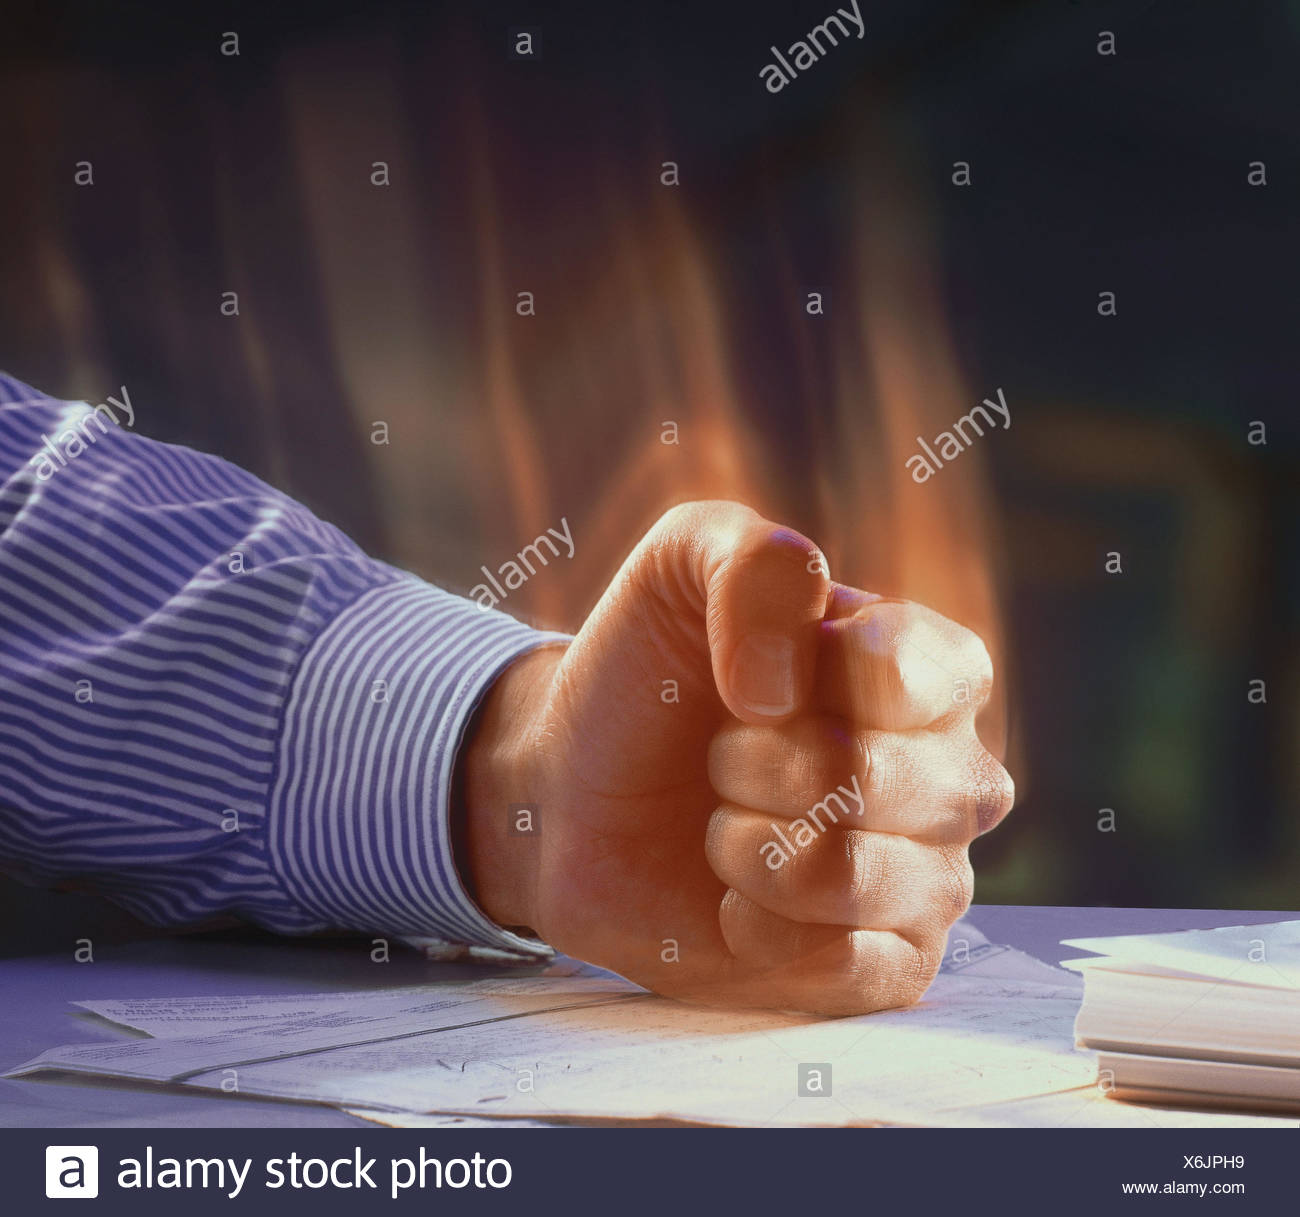 Man, detail, arm, table, fist, hit, [M], fury, rage, furiously, angrily, annoys, annoyance, fit rage, outburst rage, feeling, mood, greedily, control, lose, excites, hand, gesture Stock Photo